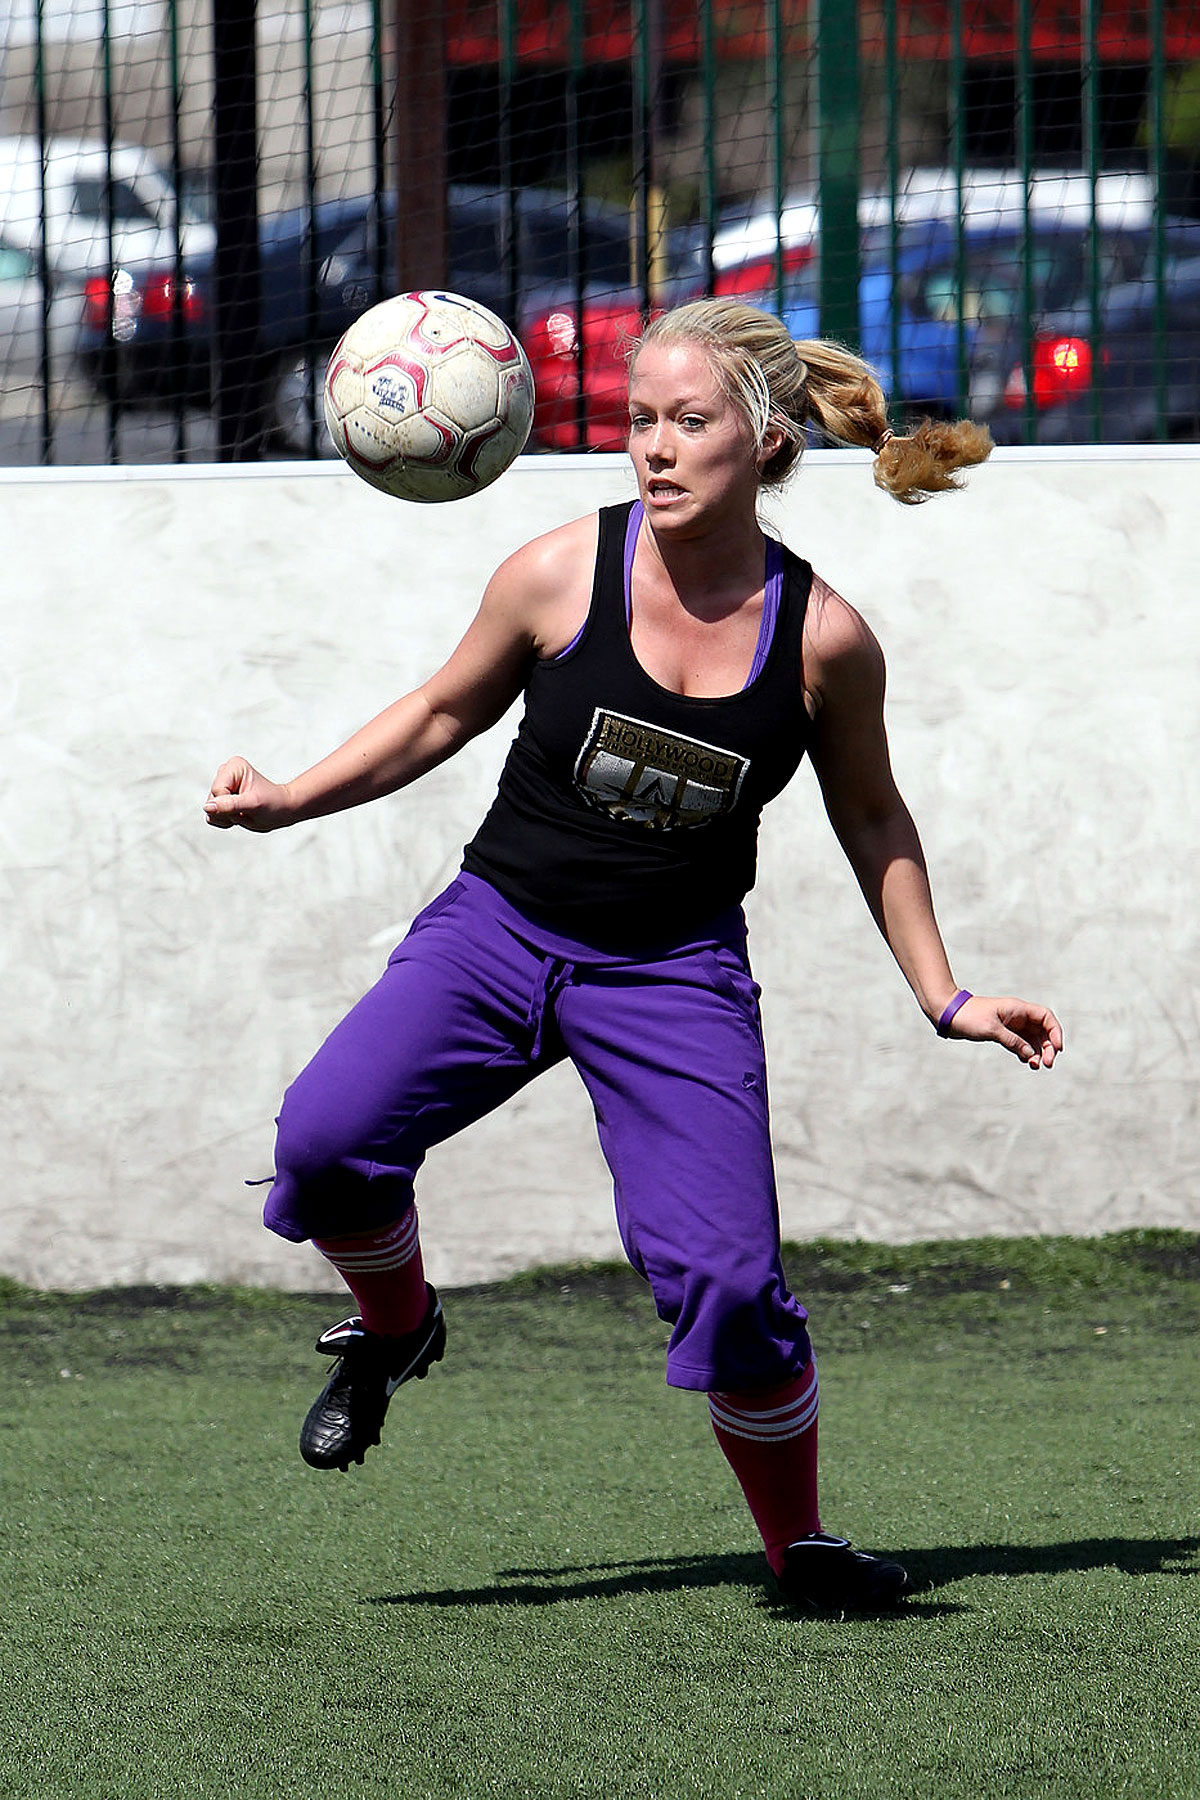 Kendra Wilkinson Is the Hottest Little Soccer Mom (PHOTOS)